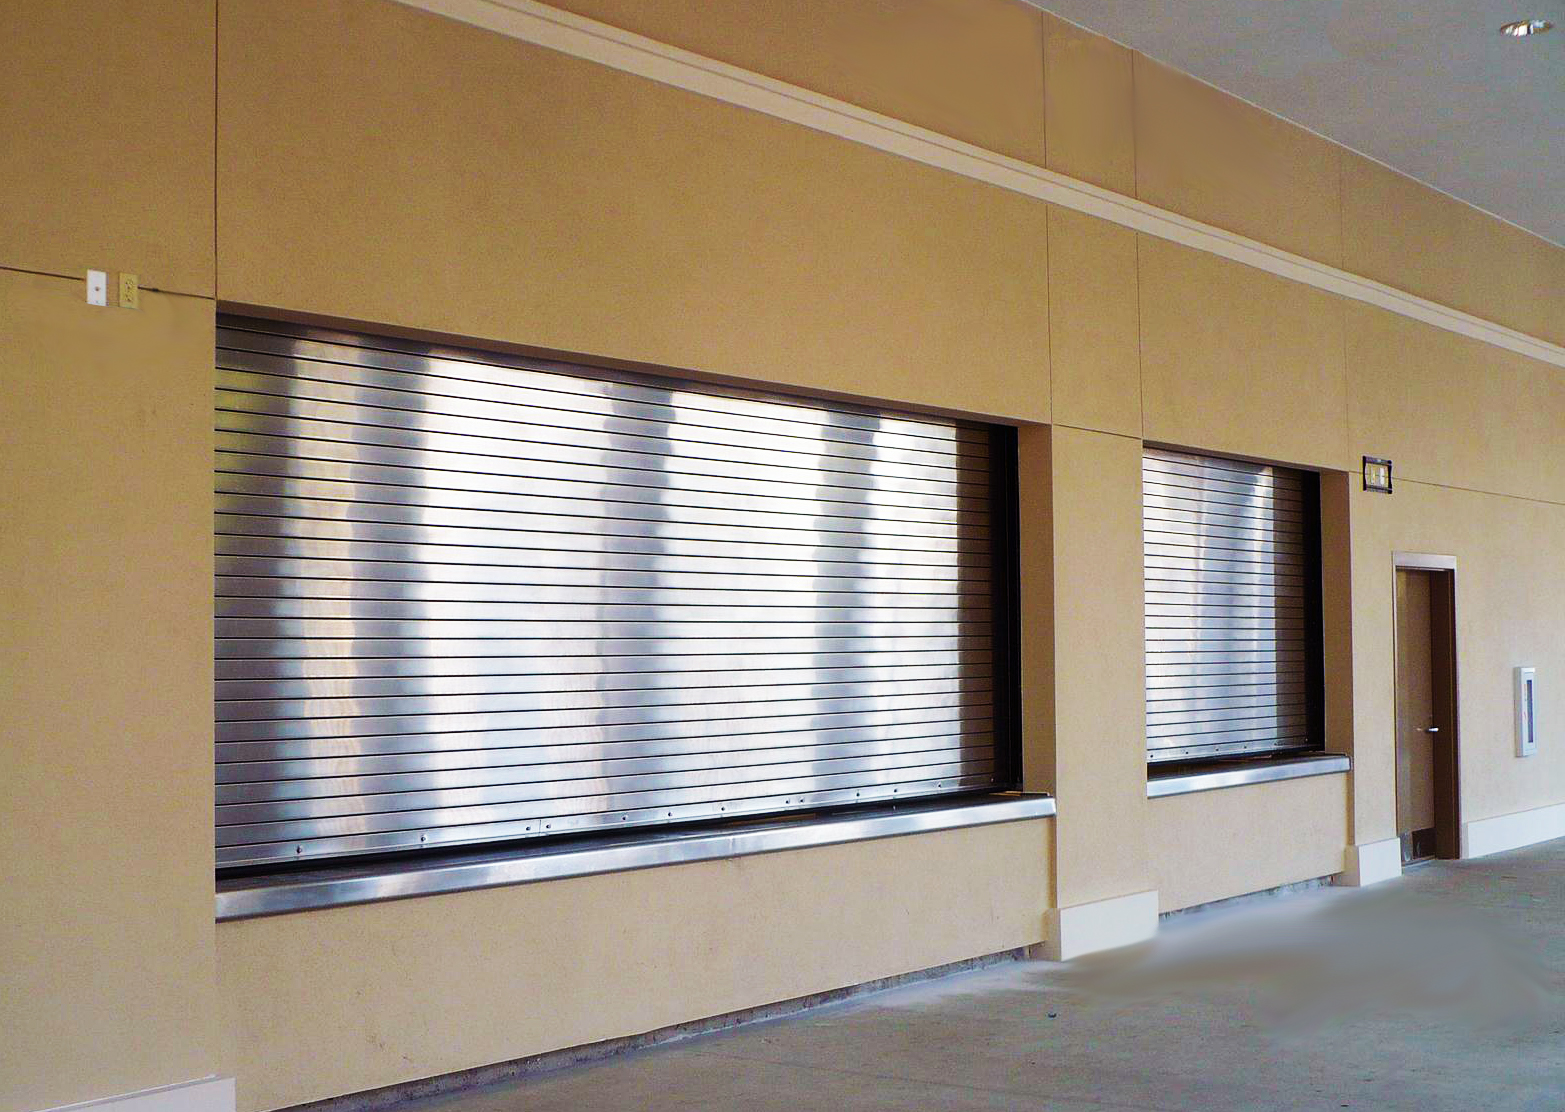 Rolling steel door on building - Service Doors Are Metal Slatted Rolling Doors Used To Provide Security Against Entry Or Weather Protection At Exterior And Interior Openings In Industrial